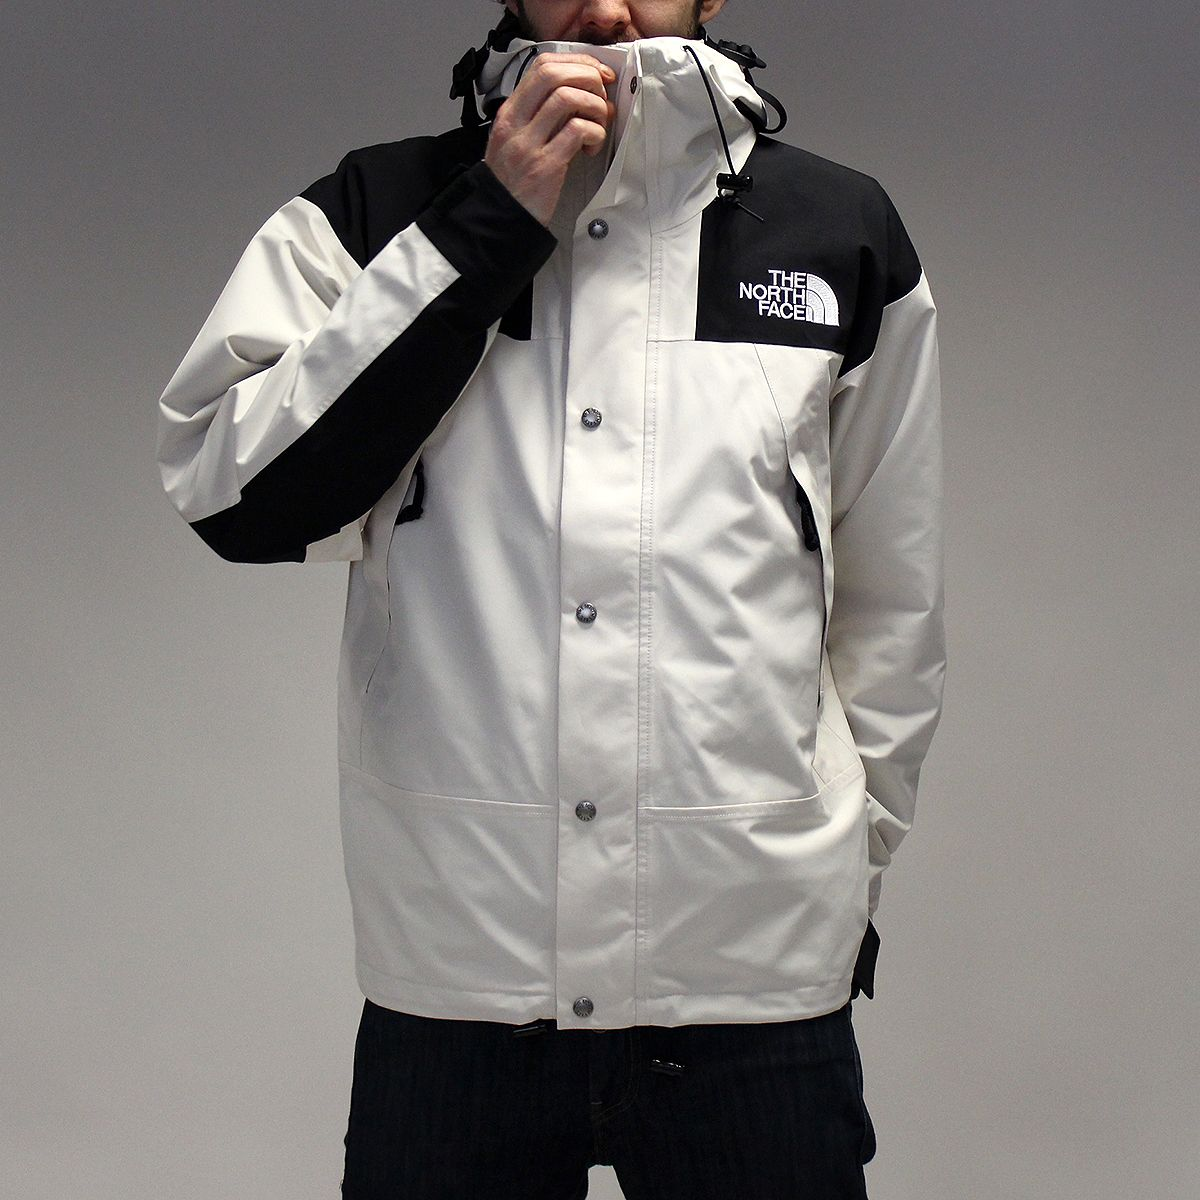 e4a393492 THE NORTH FACE 1990 MOUNTAIN GTX JACKET – VINTAGE WHITE | COLOR ...